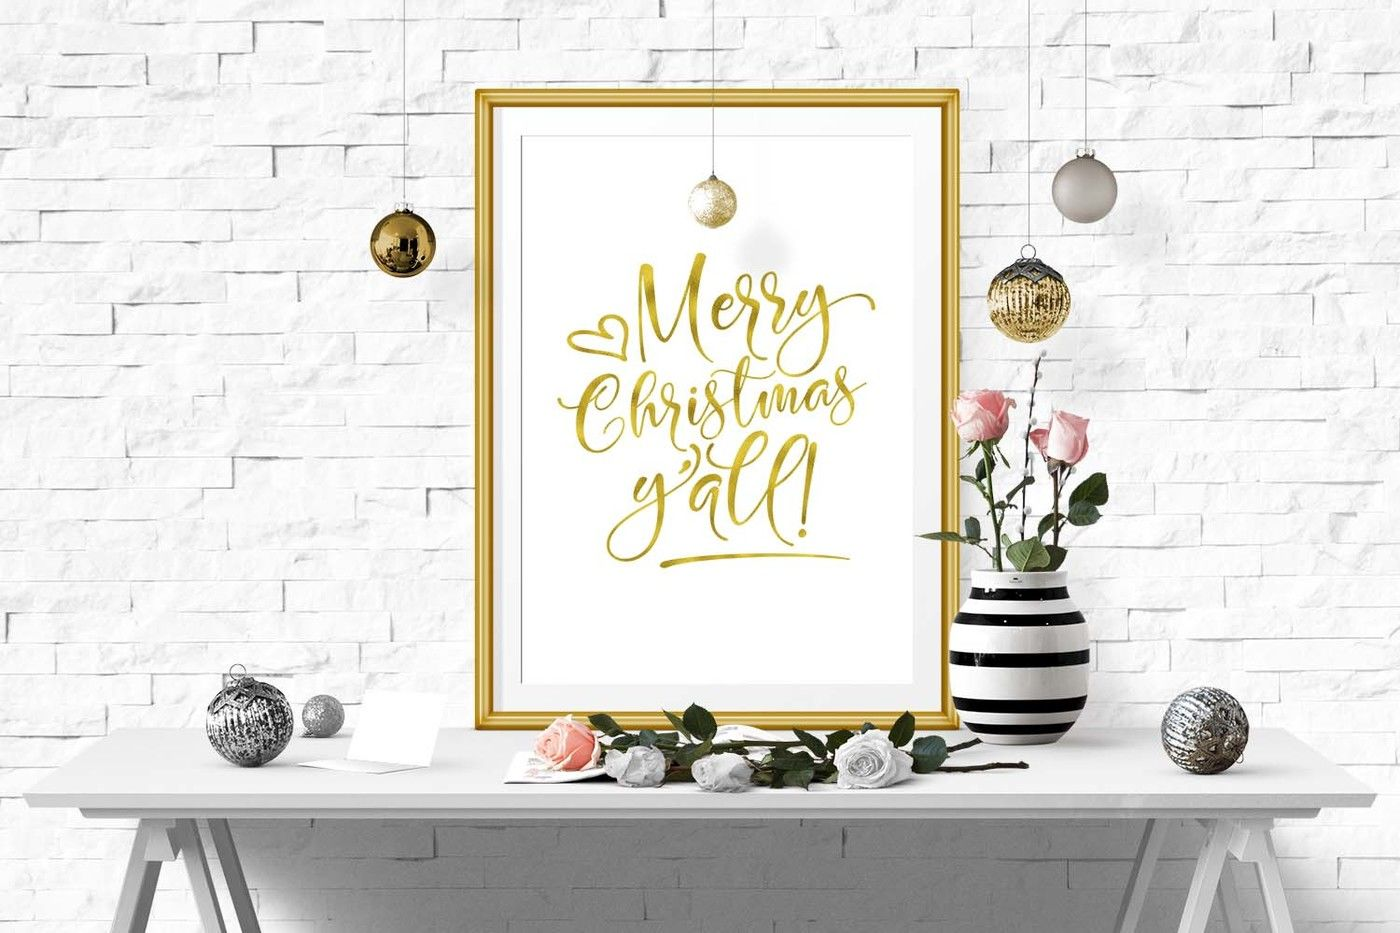 Merry Christmas Yall Svg Dxf Png Eps By Theblackcatprints